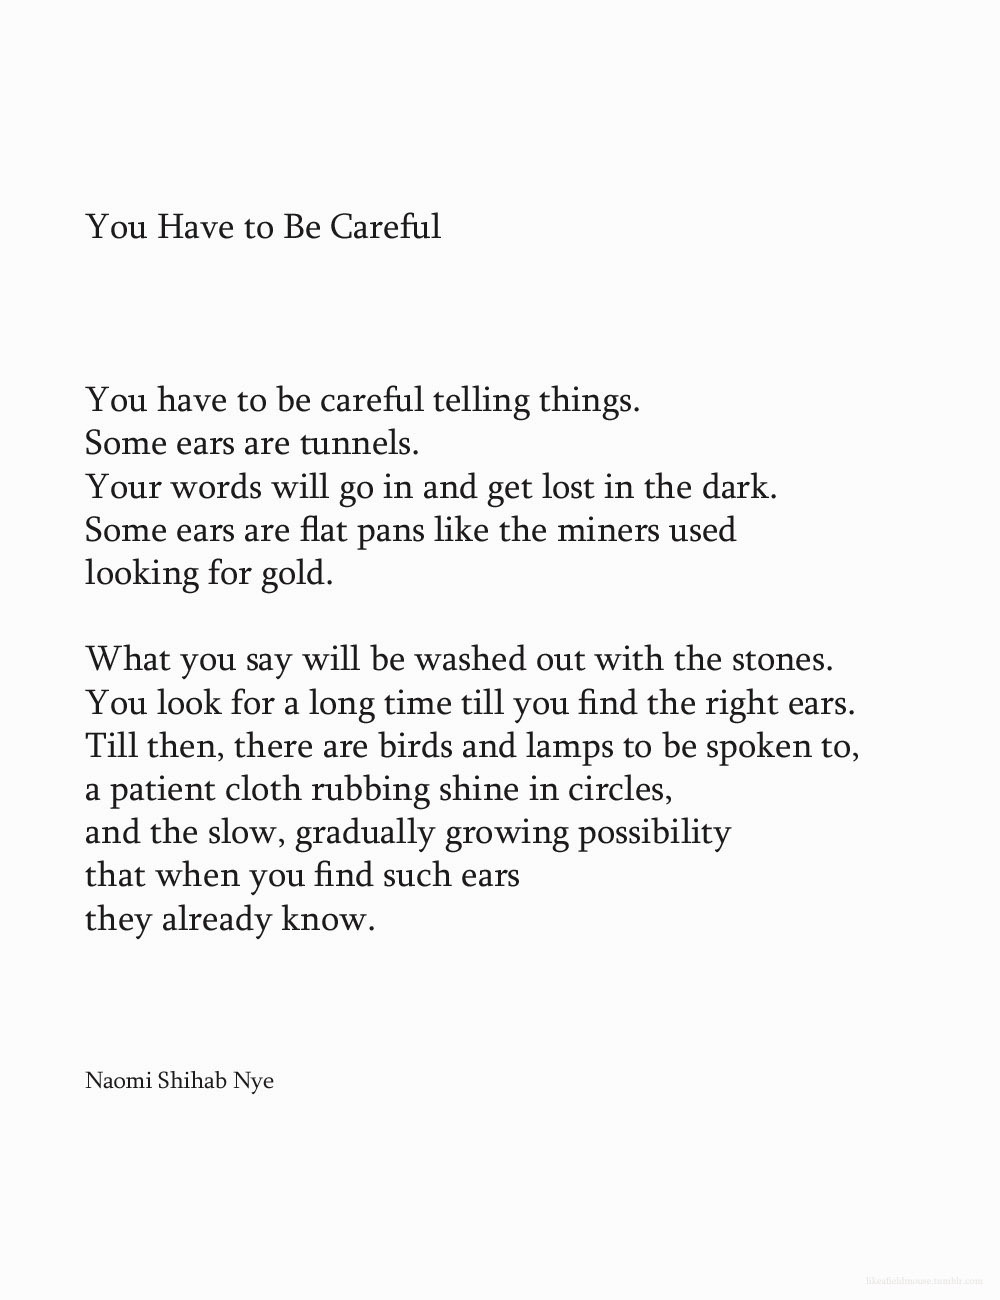 likeafieldmouse:  Naomi Shihab Nye - You Have to Be Careful